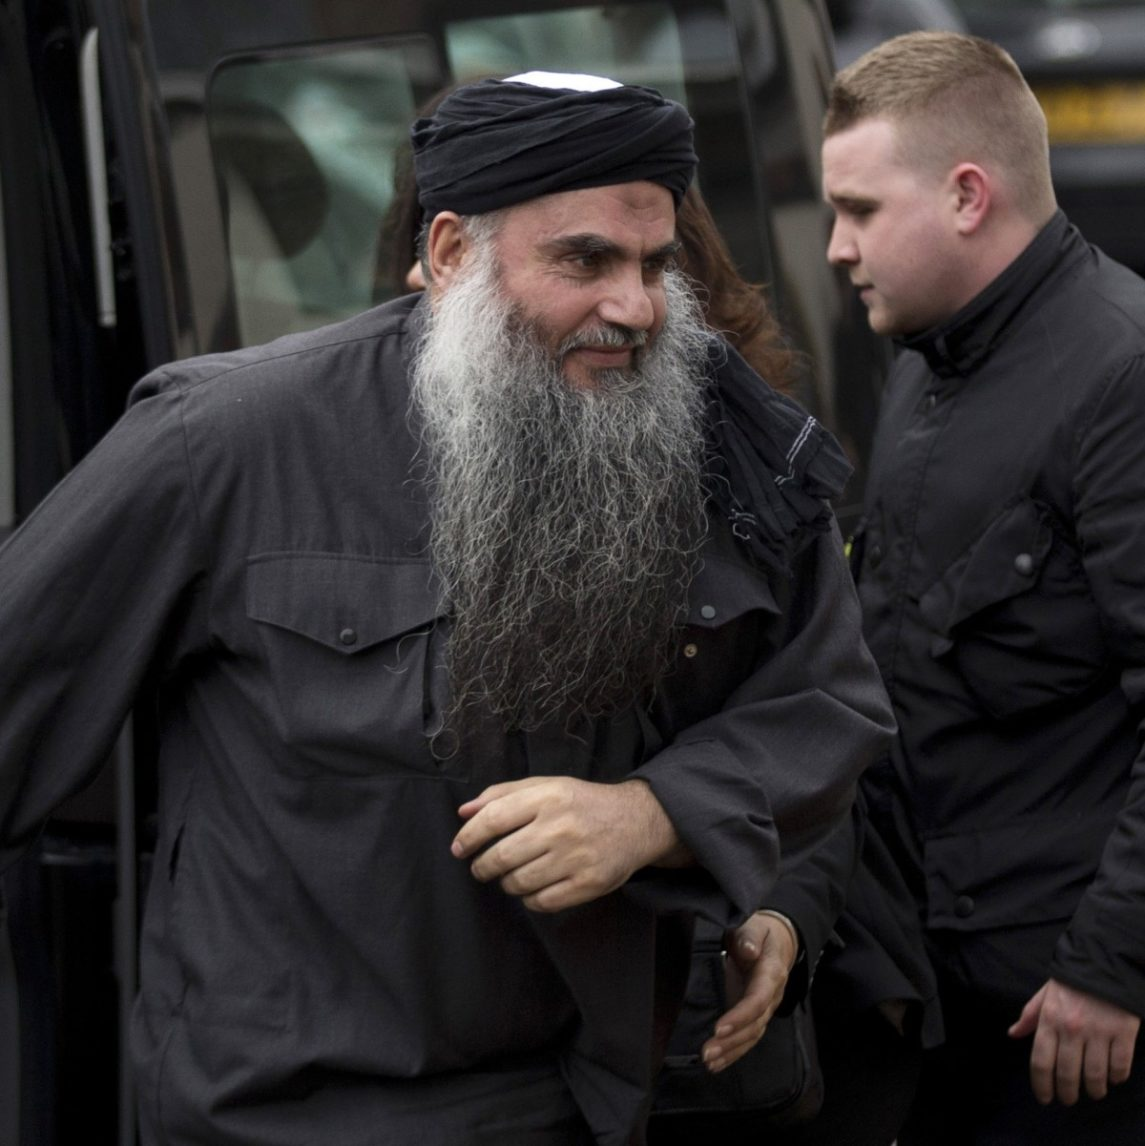 Abu Qatada Extradition: Suspected Terrorist Wins Appeal To Stay In UK, Gets Bail